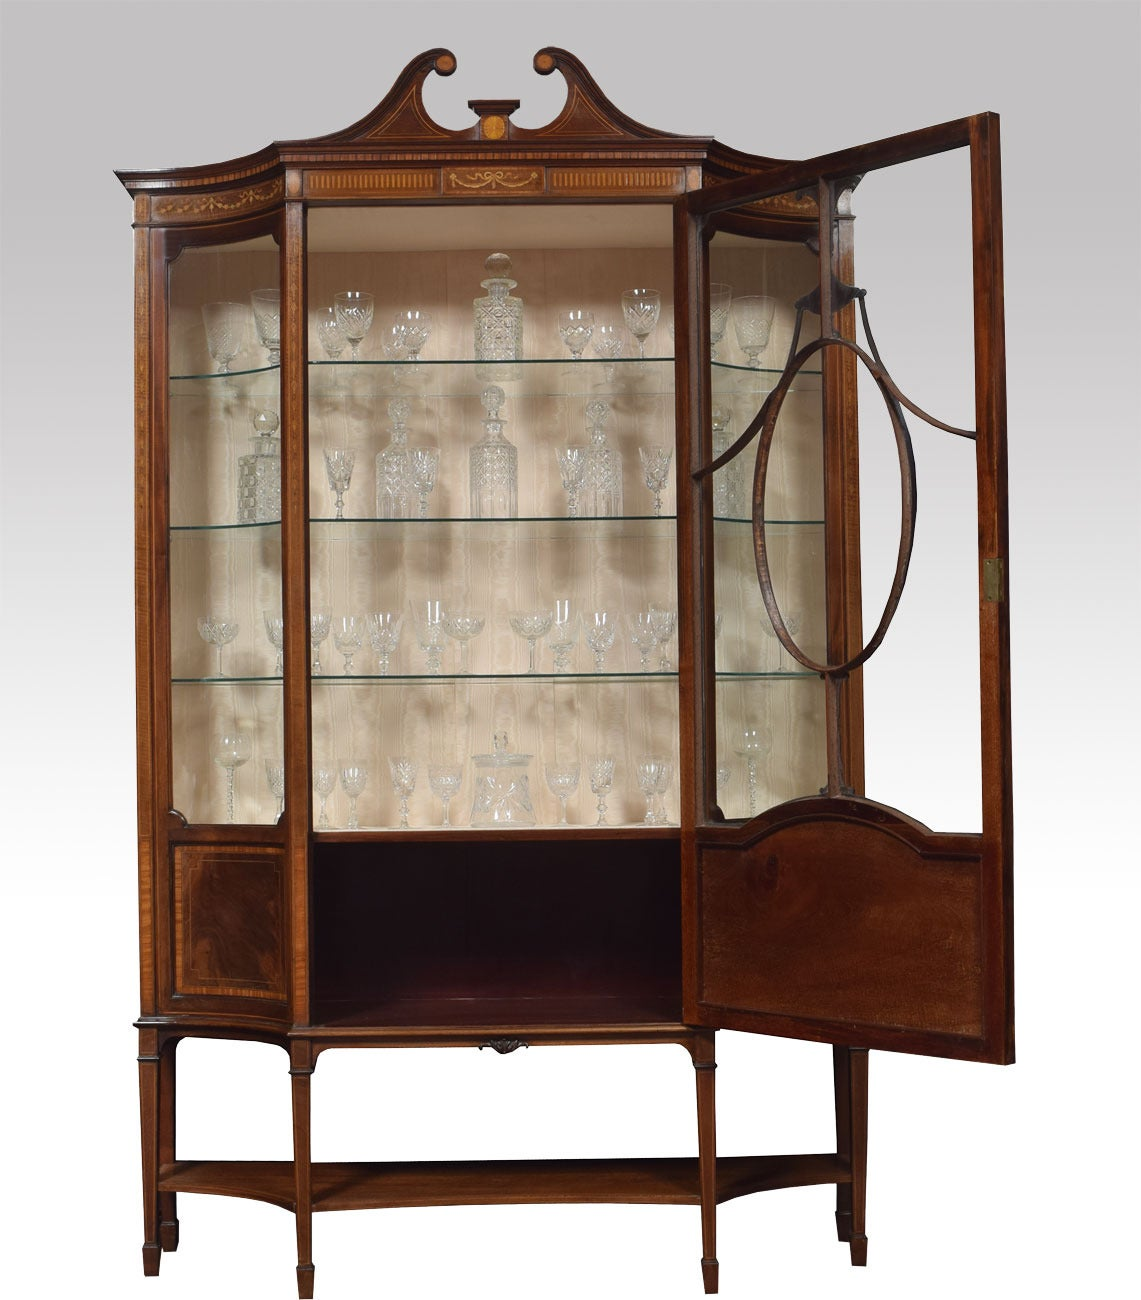 Late 19th Century Mahogany Sheraton Revival Inlaid Display Cabinet 3